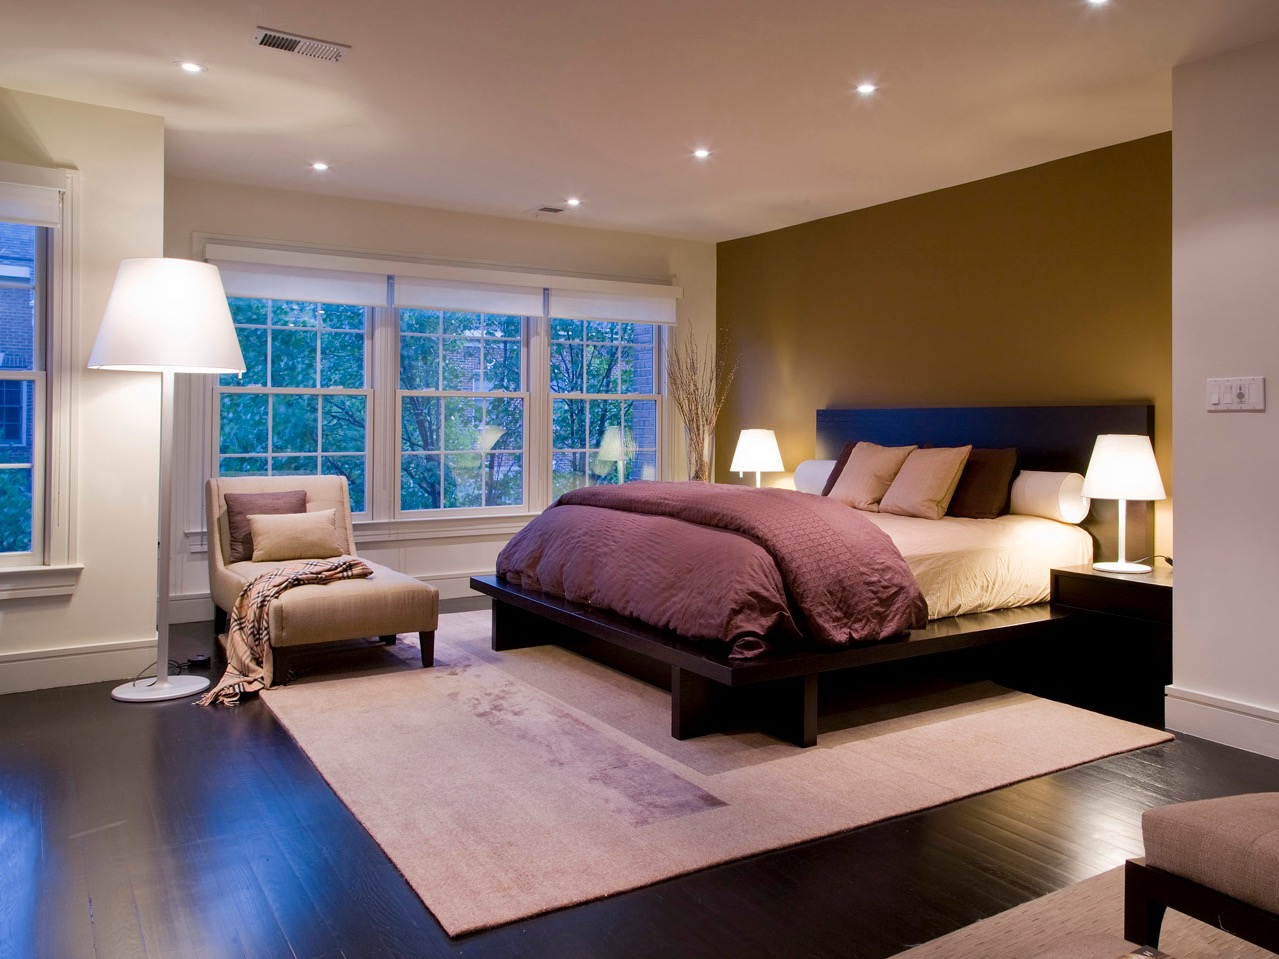 Luxury Design For Small Bedroom Interior Space 16517